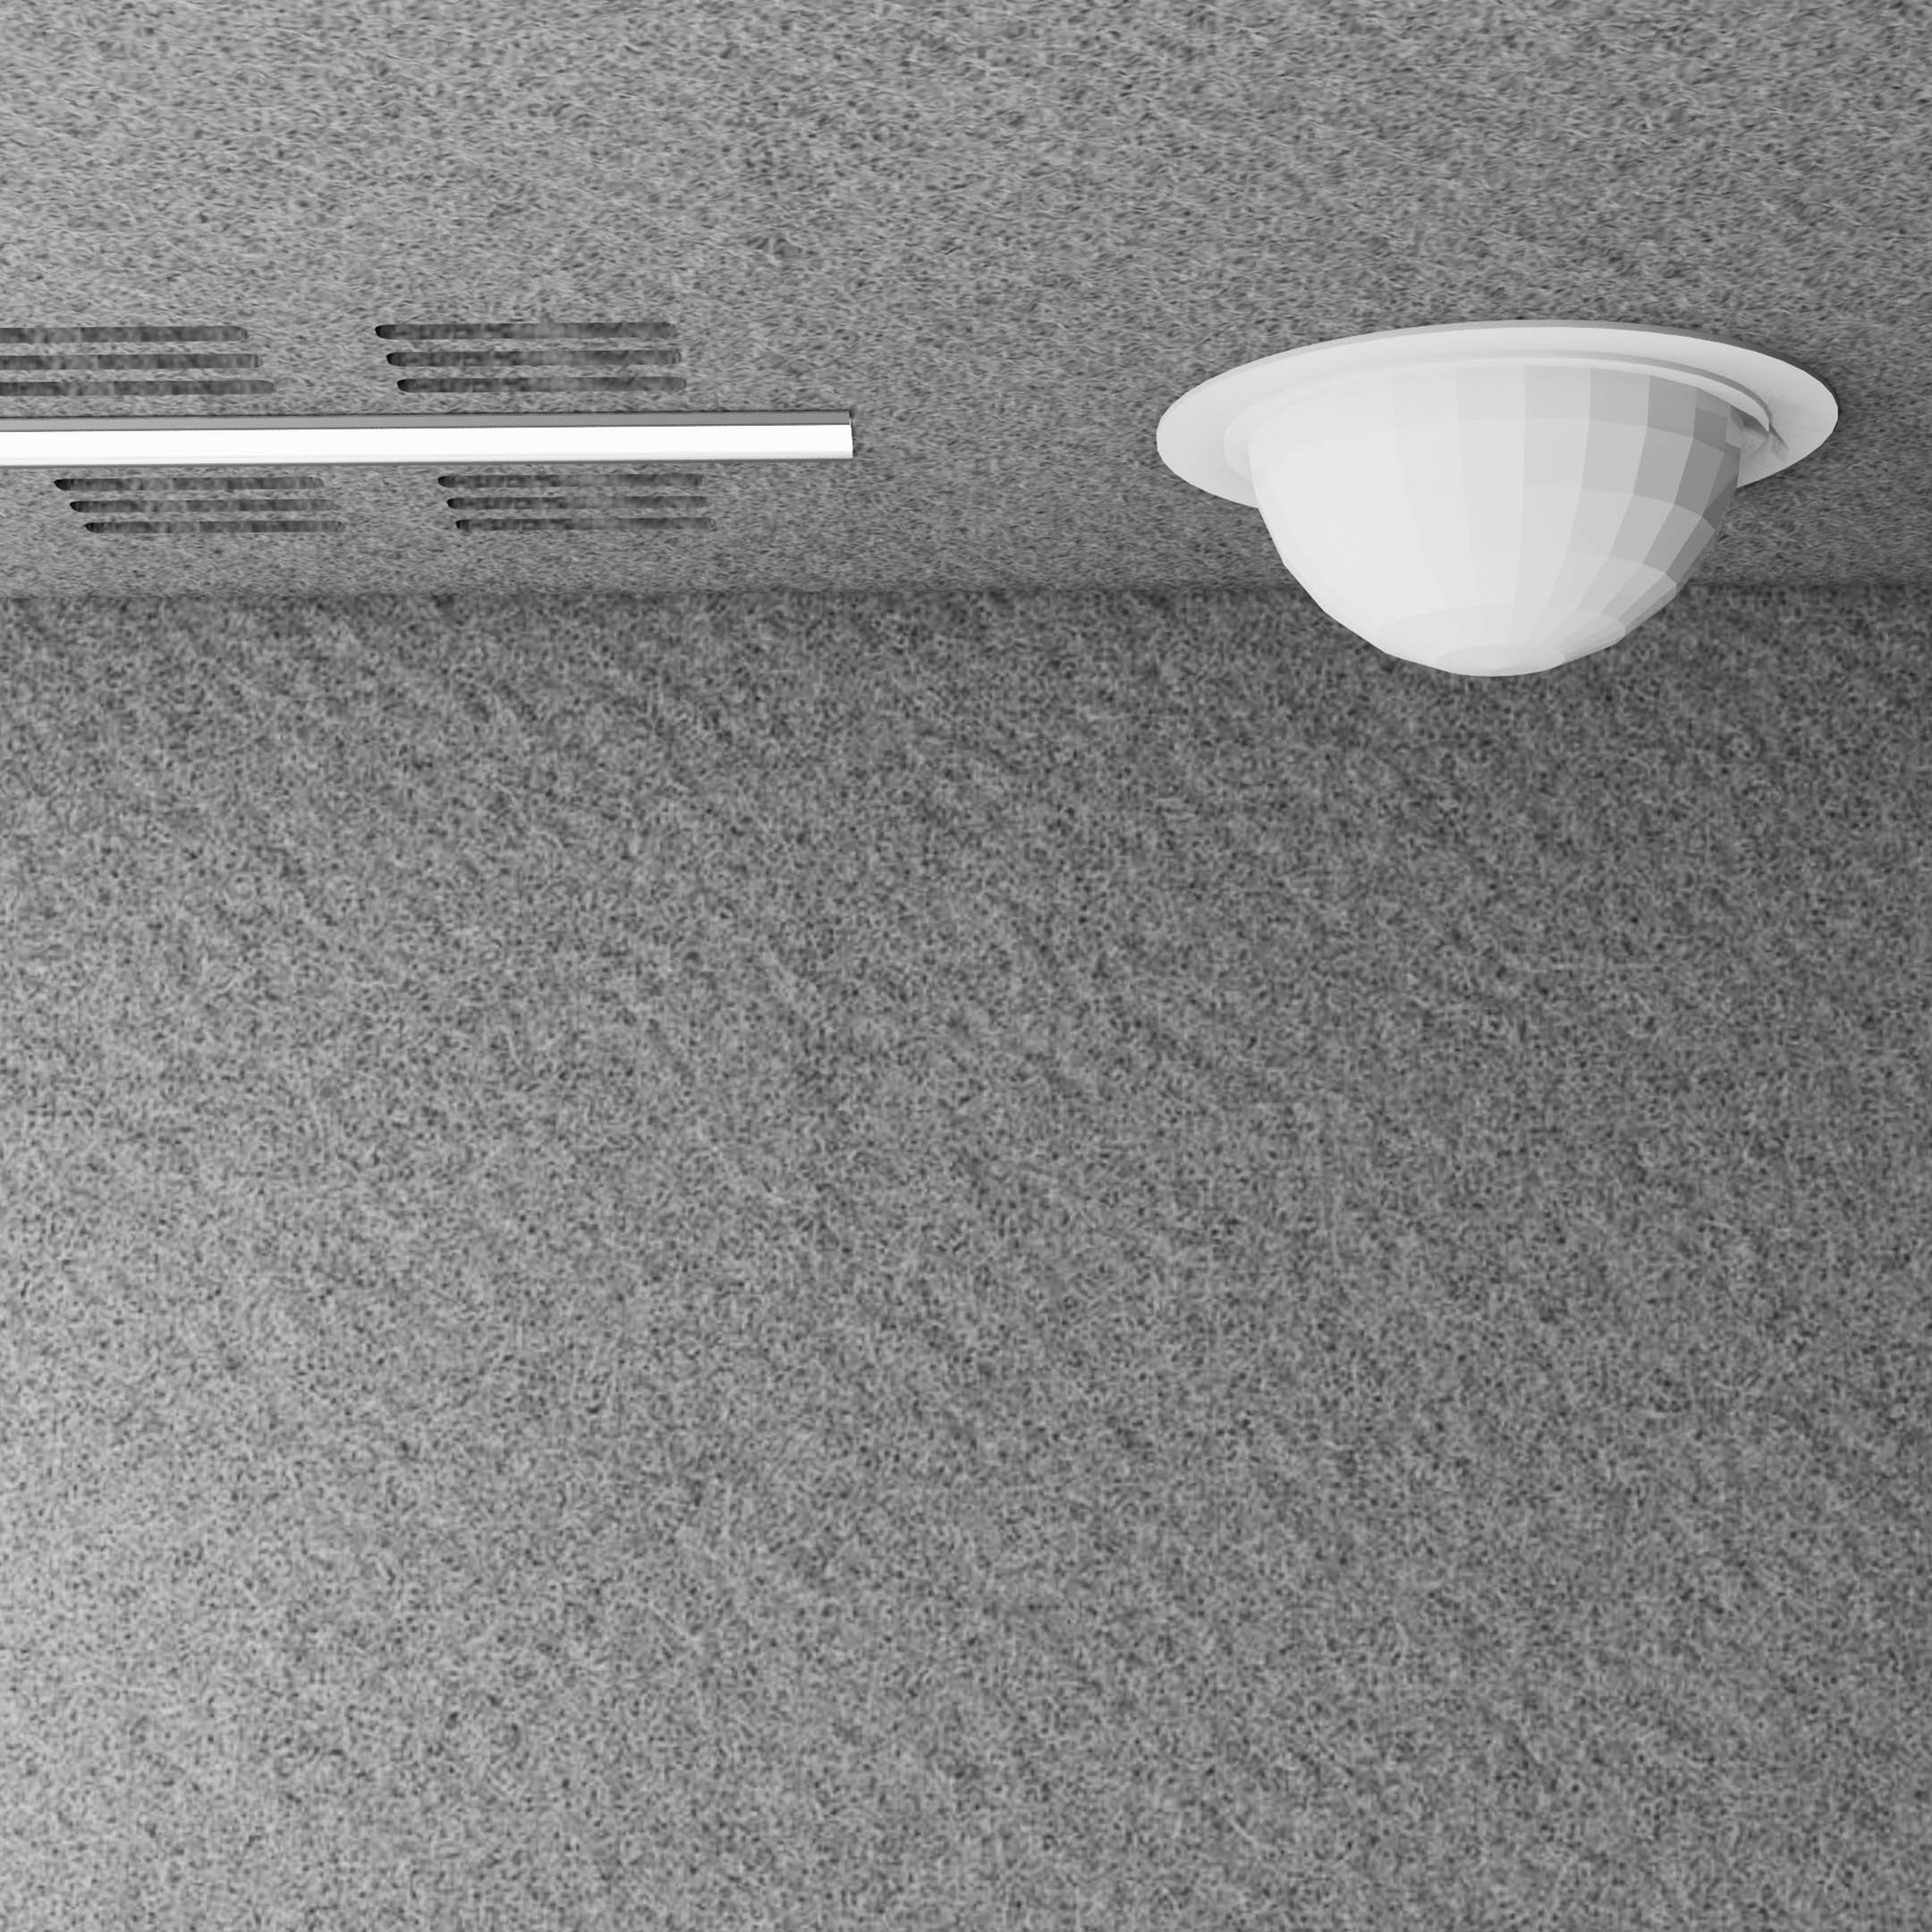 SPACE 1-MOTION SENSOR AND LIGHT